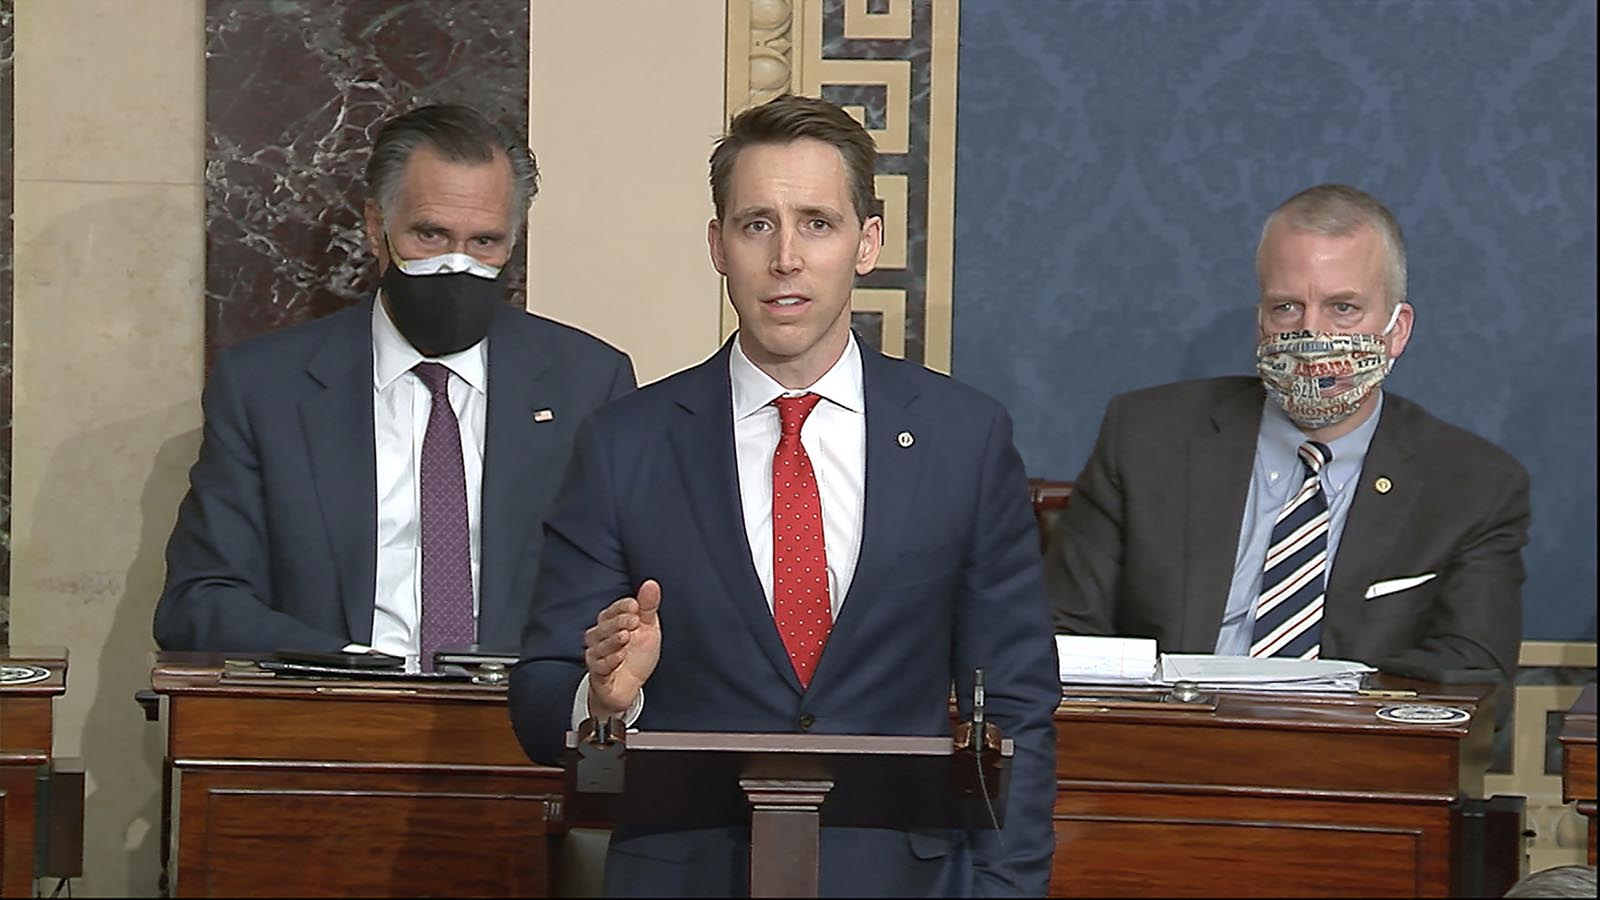 In this image from video, Sen. Josh Hawley of Missouri speaks as the Senate reconvenes to debate the objection to confirm the Electoral College Vote from Arizona, after protesters stormed into the U.S. Capitol on Wednesday, January 6.